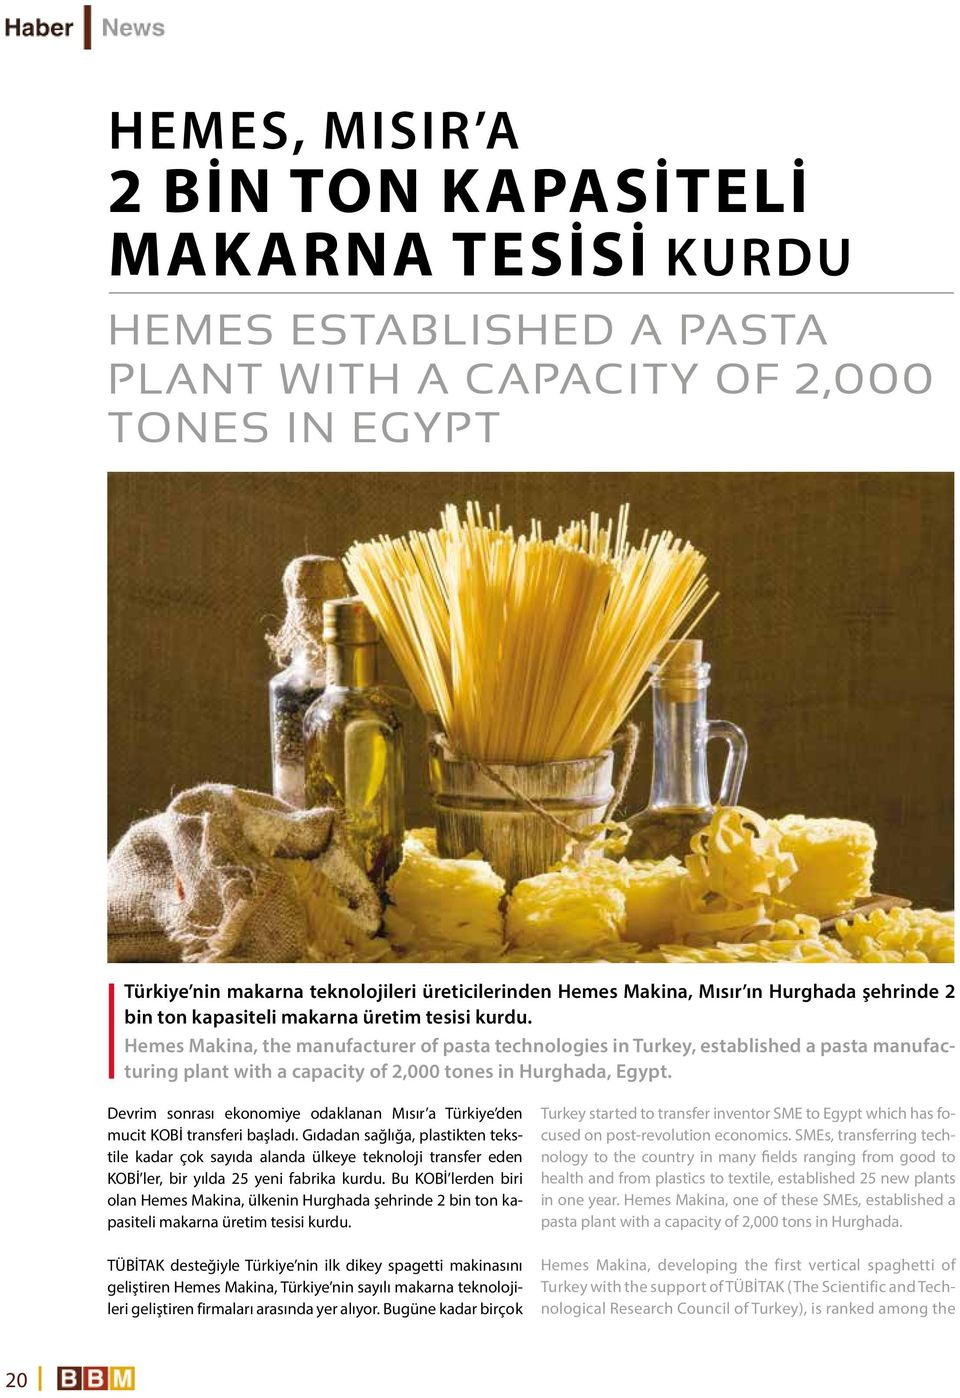 Hemes Makina, the manufacturer of pasta technologies in Turkey, established a pasta manufacturing plant with a capacity of 2,000 tones in Hurghada, Egypt.